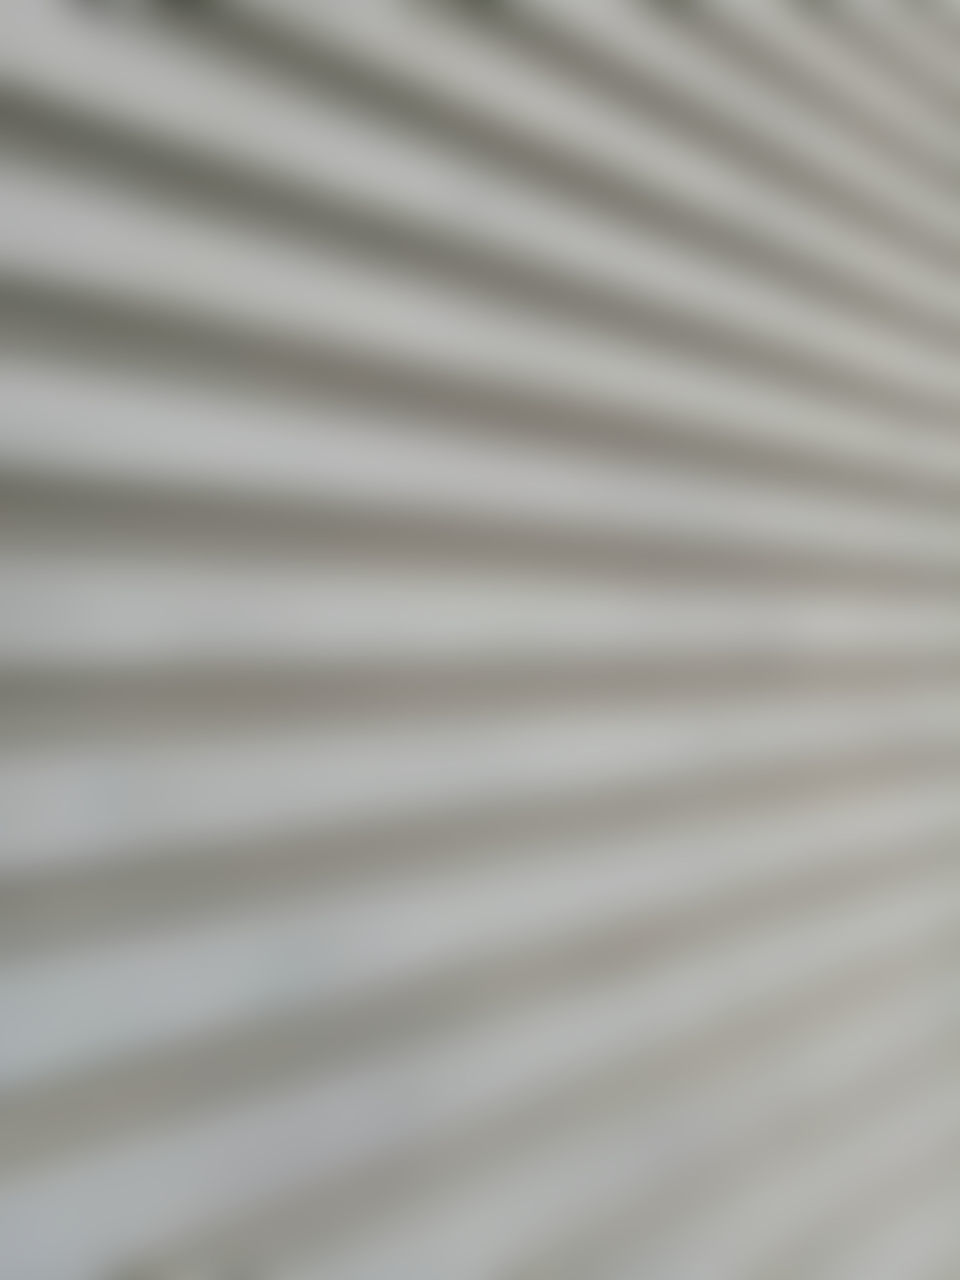 backgrounds, full frame, pattern, textured, no people, close-up, indoors, day, brushed metal